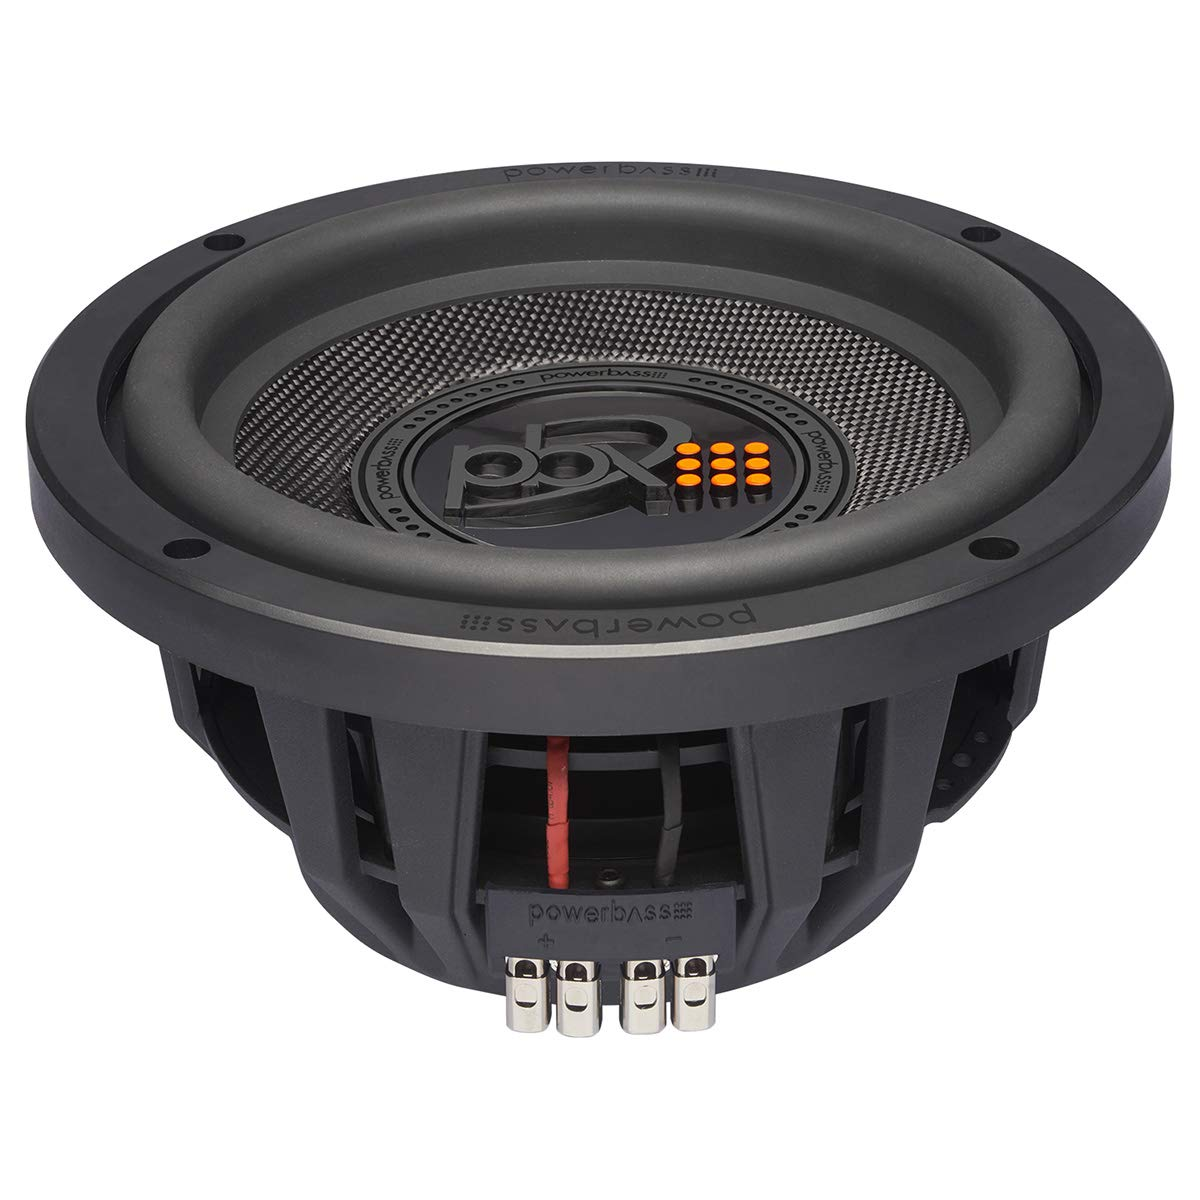 PowerBass 2XL Series 10 Compact Dual 4-Ohm Subwoofer